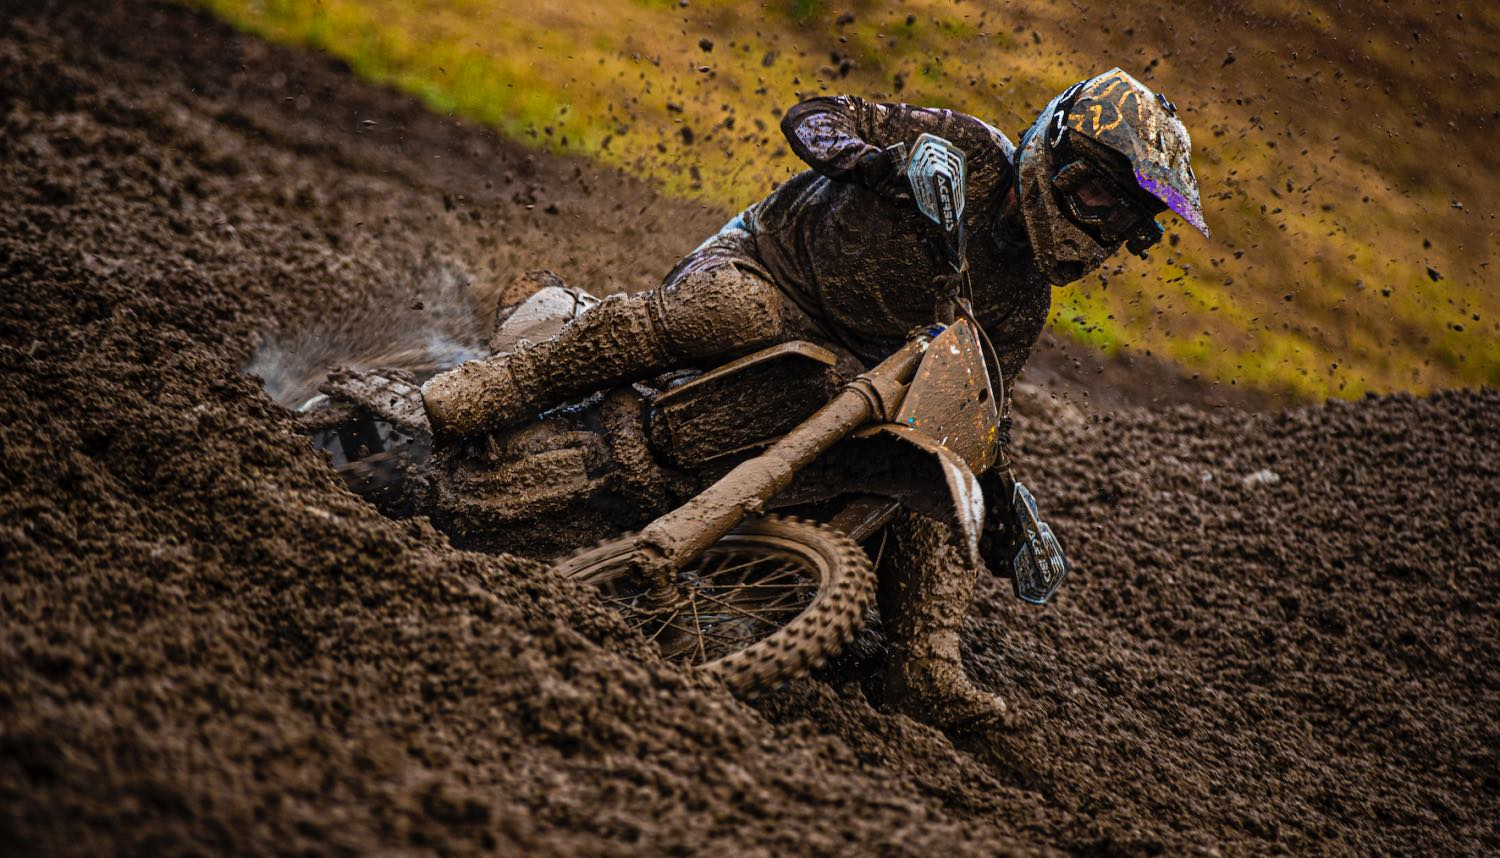 David Goosen racing in the MX1 class ar Round 4 of the 2021 South African National Motocross Championship